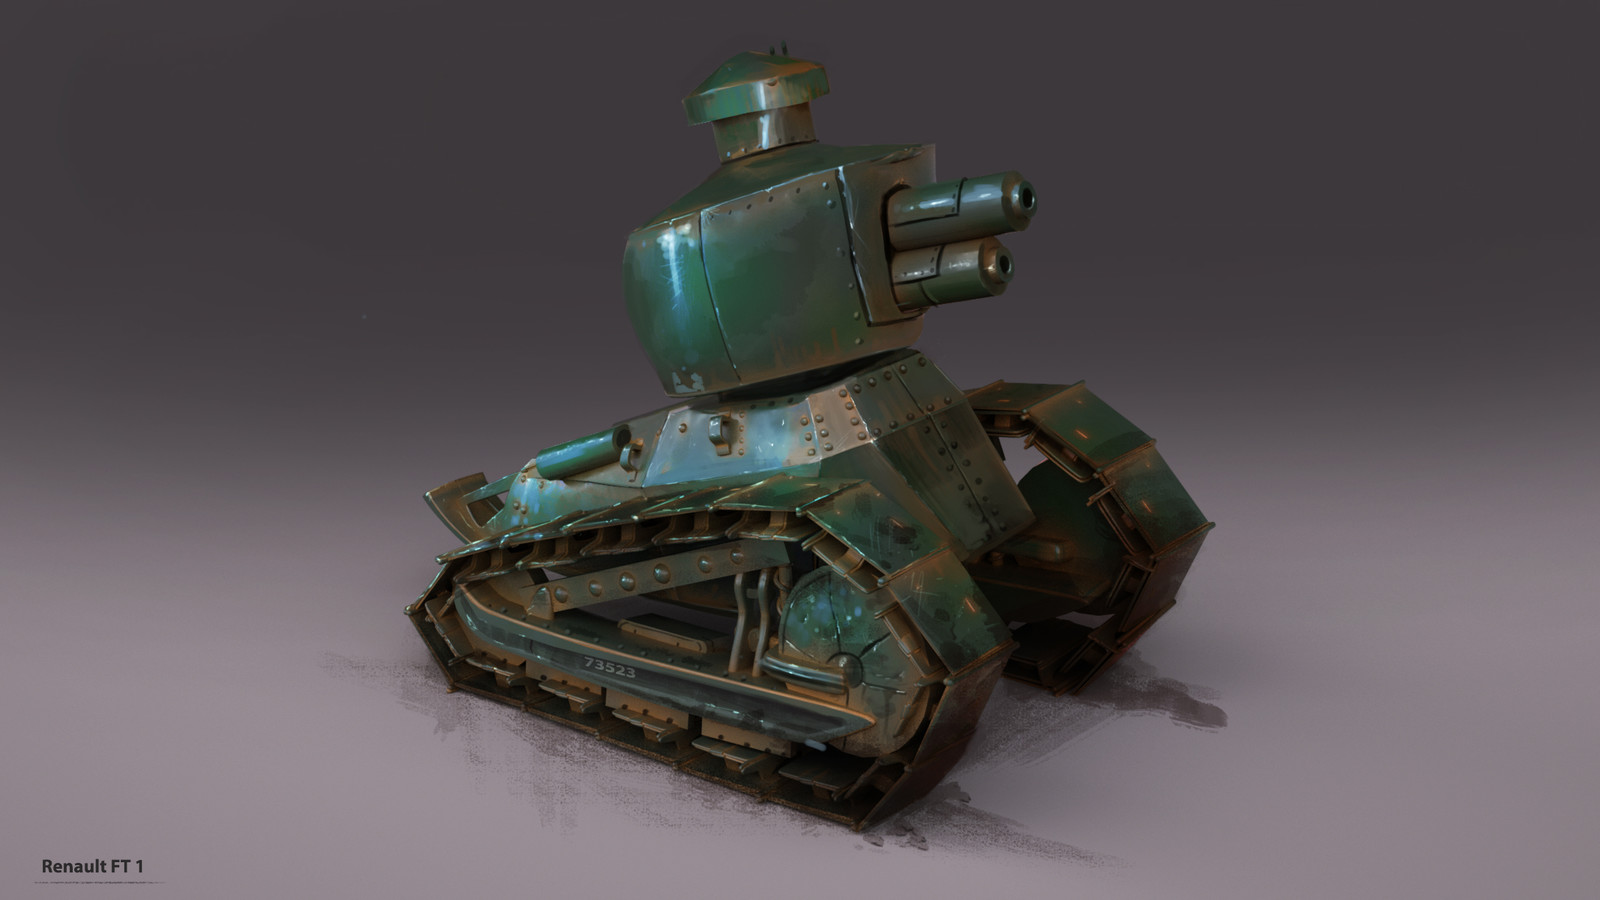 renault FT 1